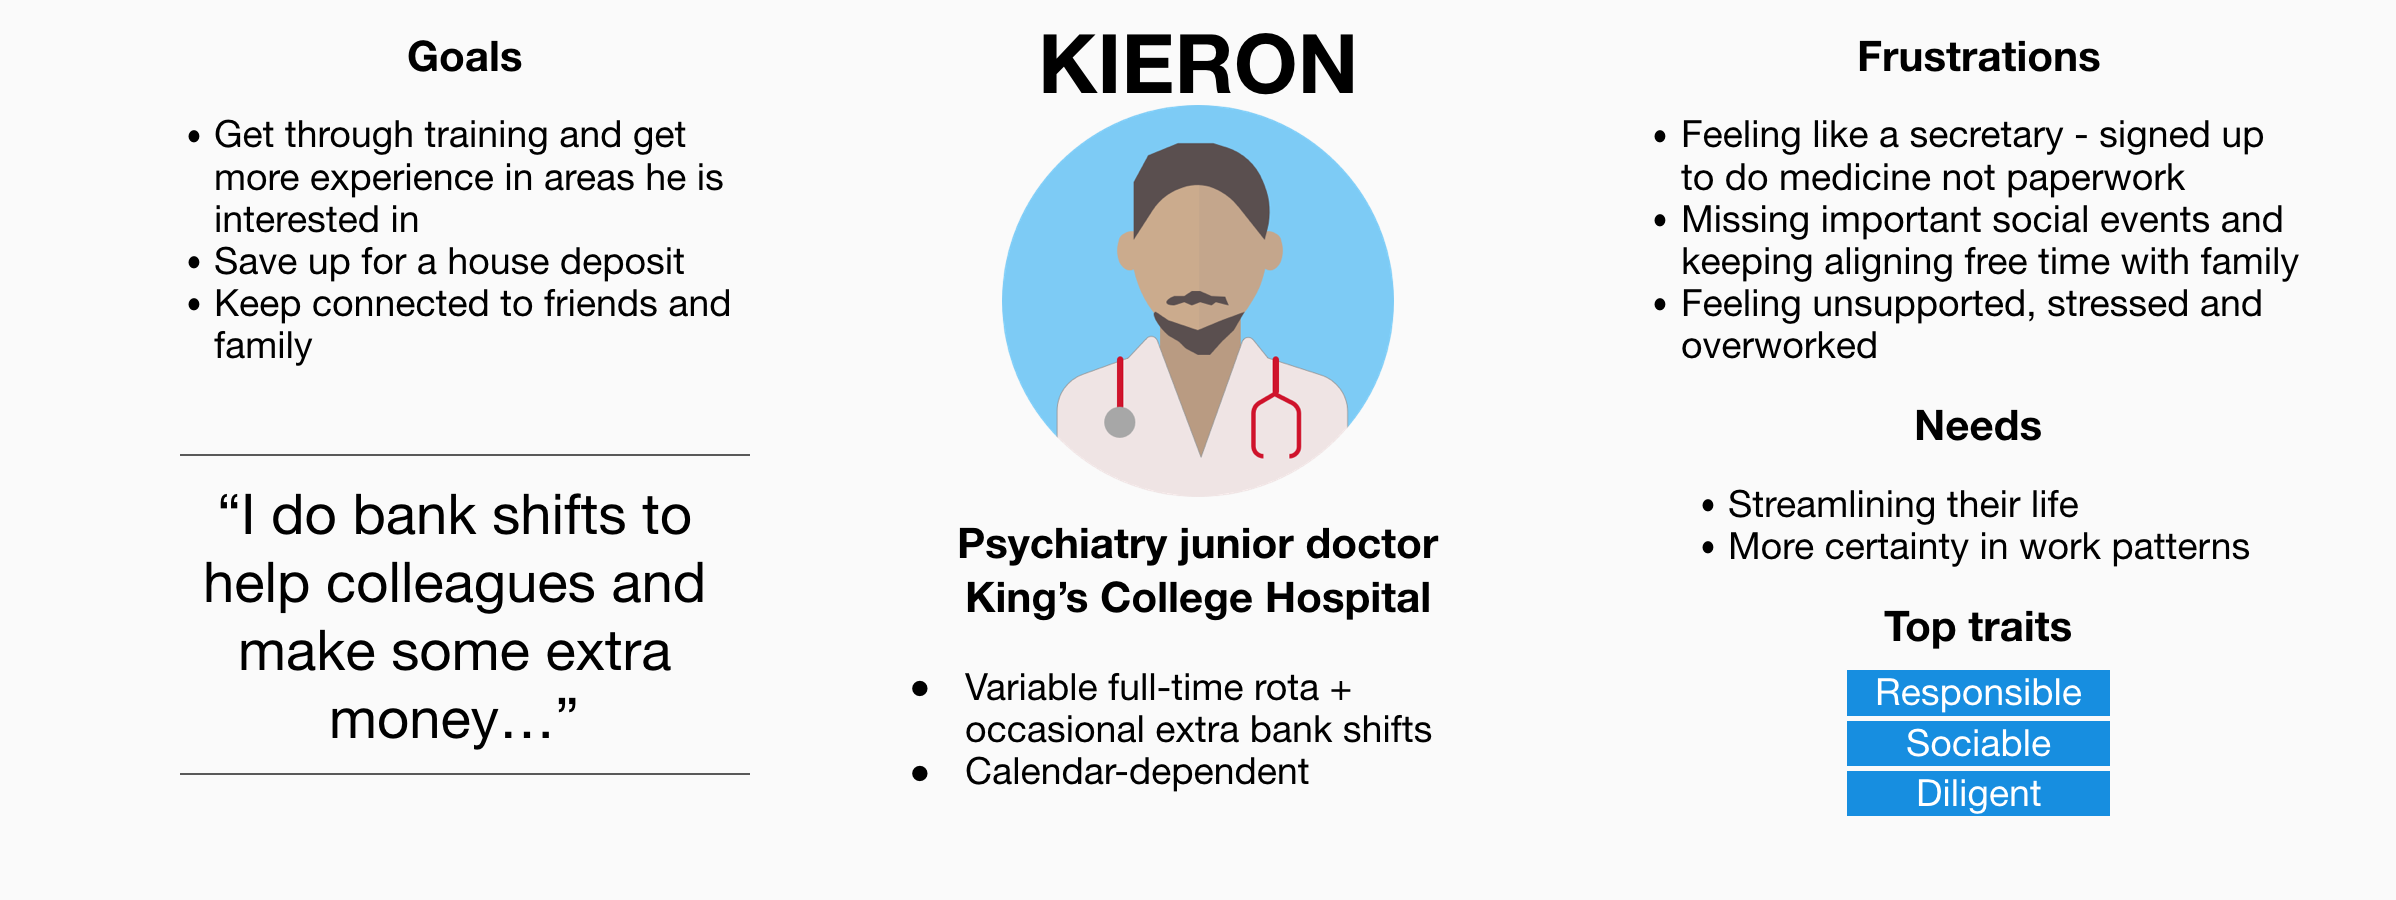 A summary of the UX persona we created for Kieron, a junior doctor